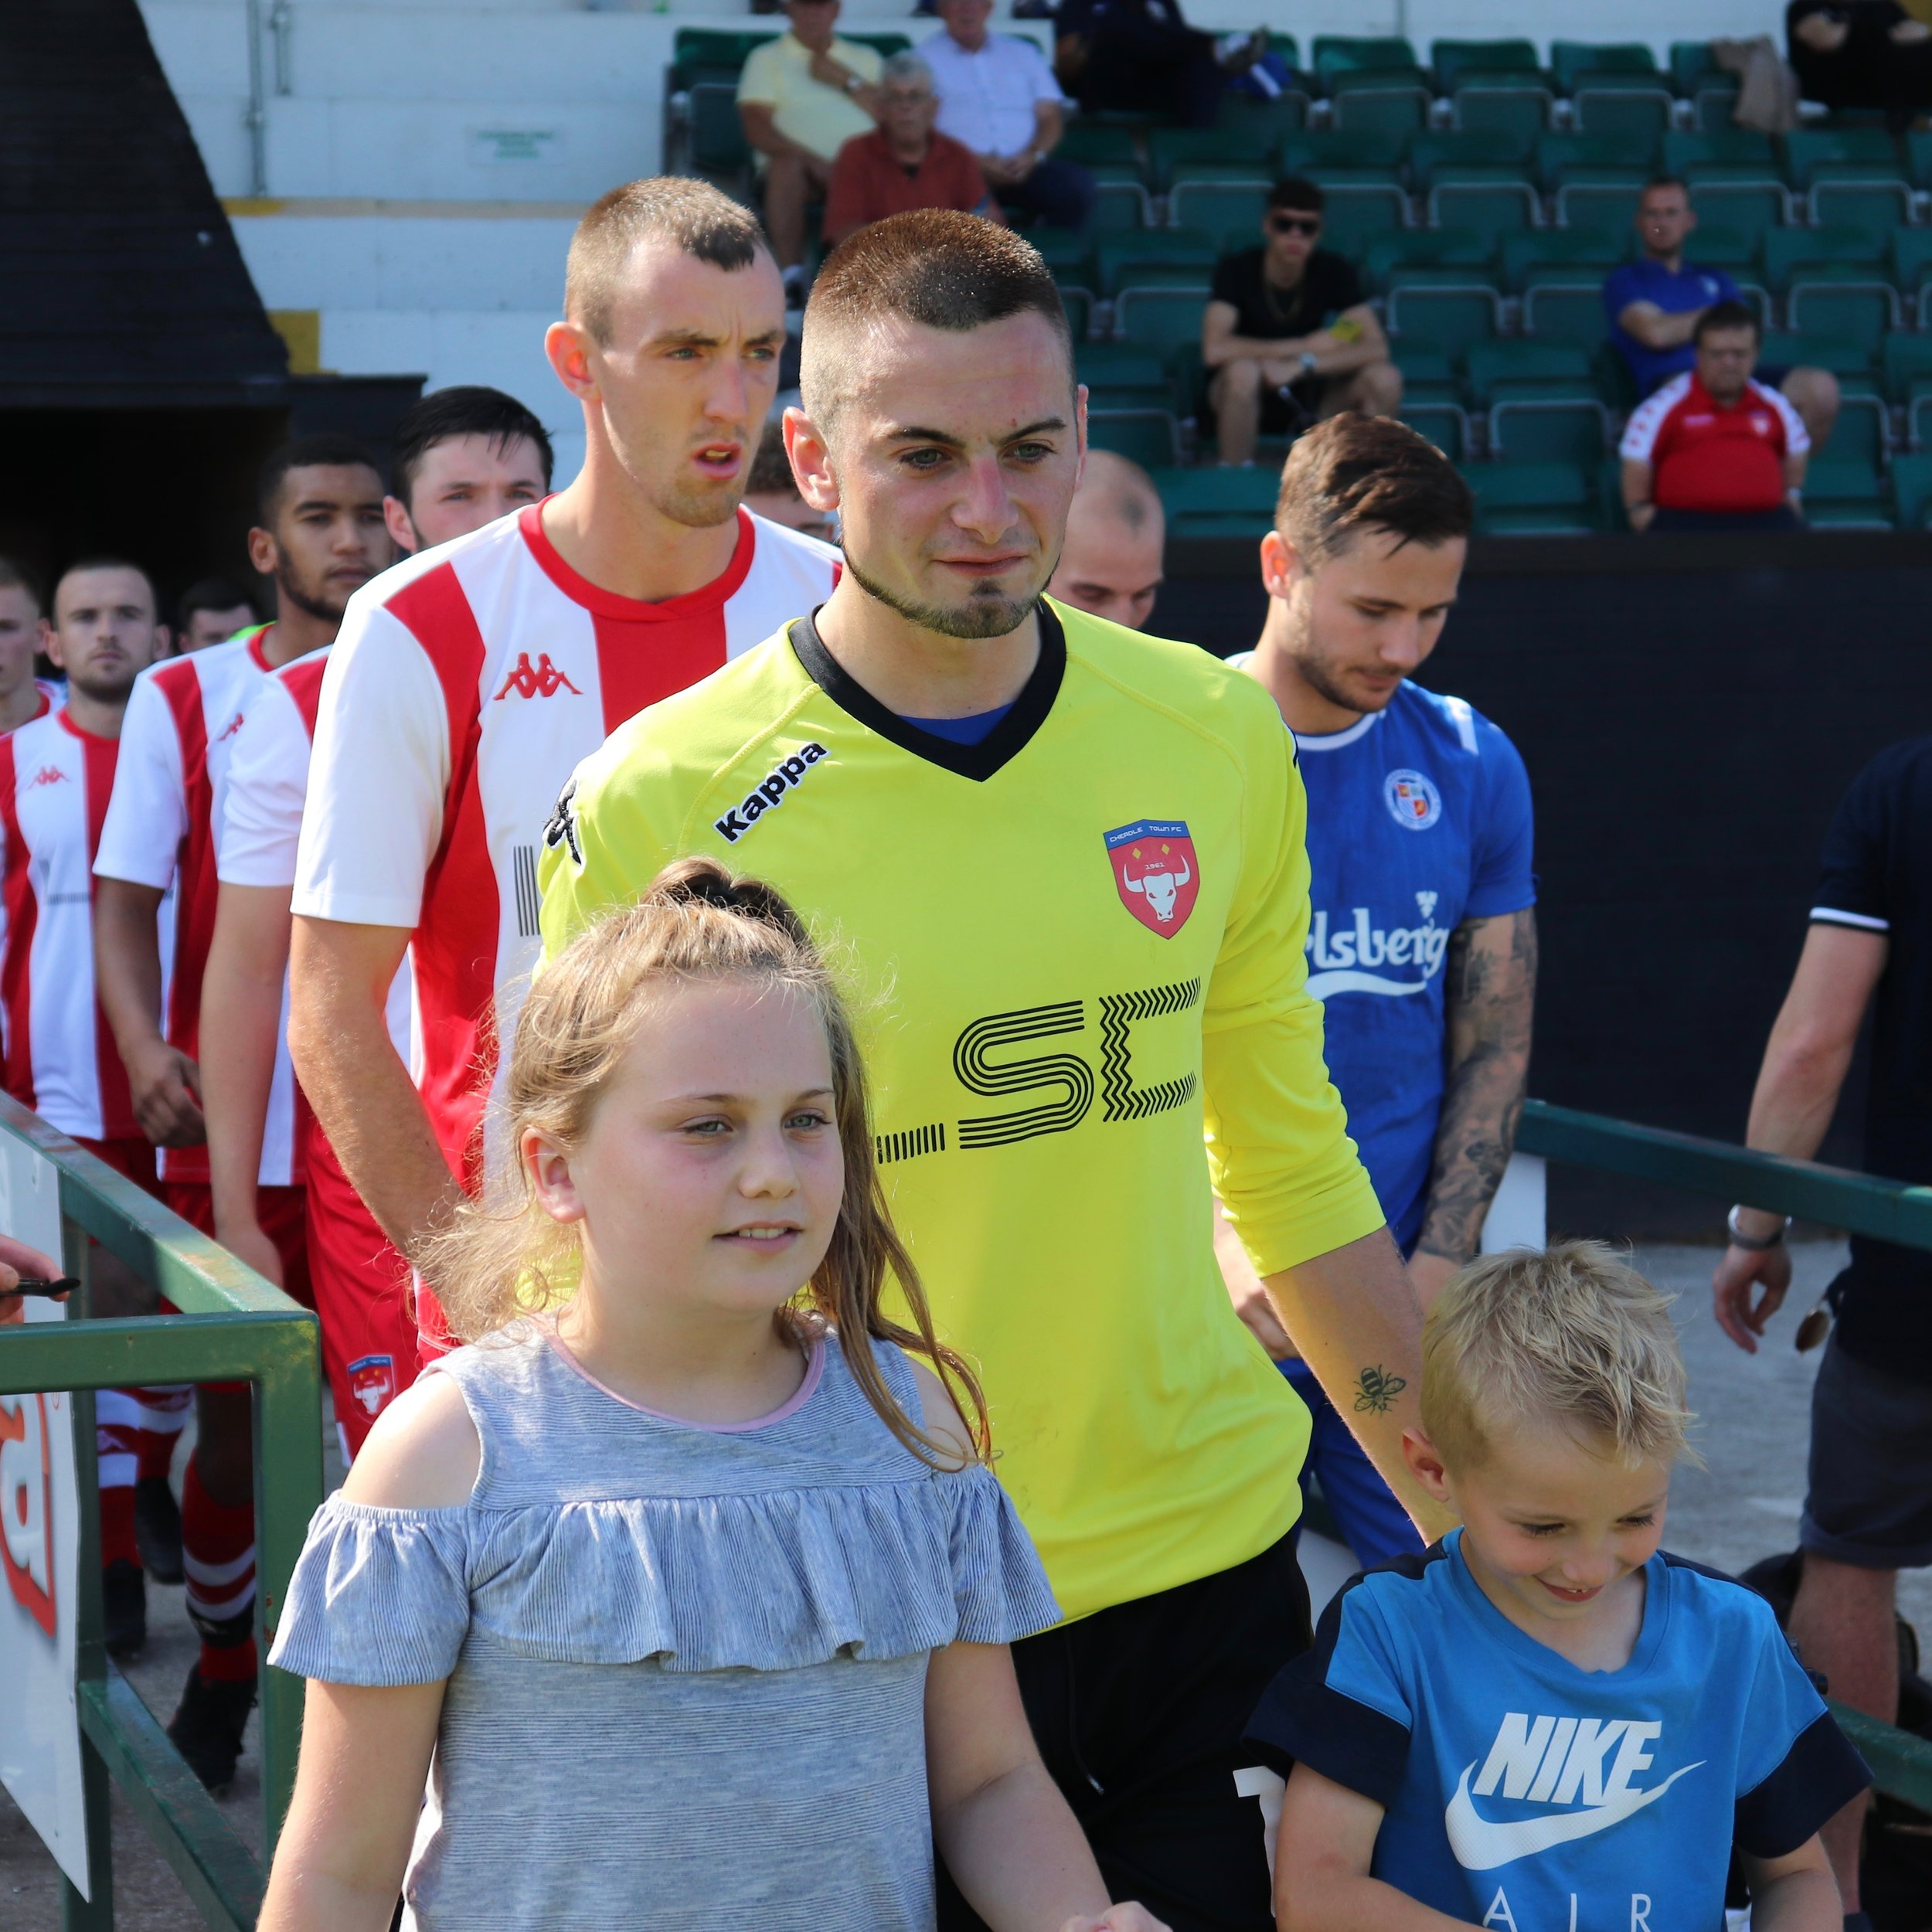 Danny Whiting and our two mascots for the day lead the teams out